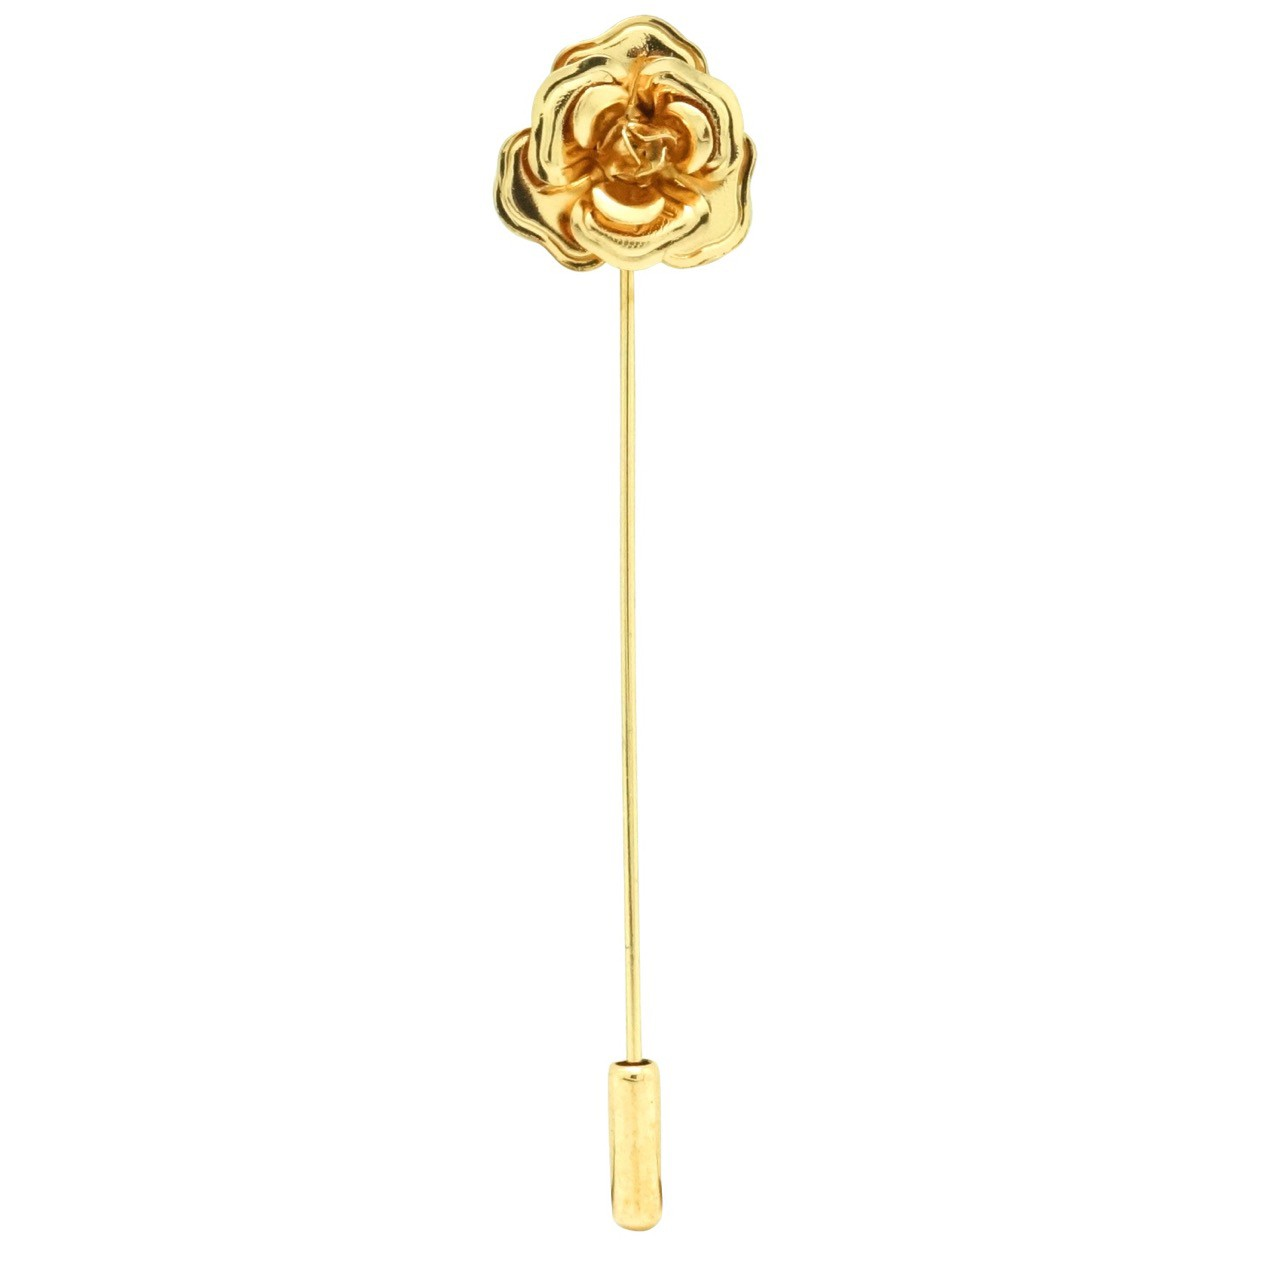 3D Gold Rose lapel pin